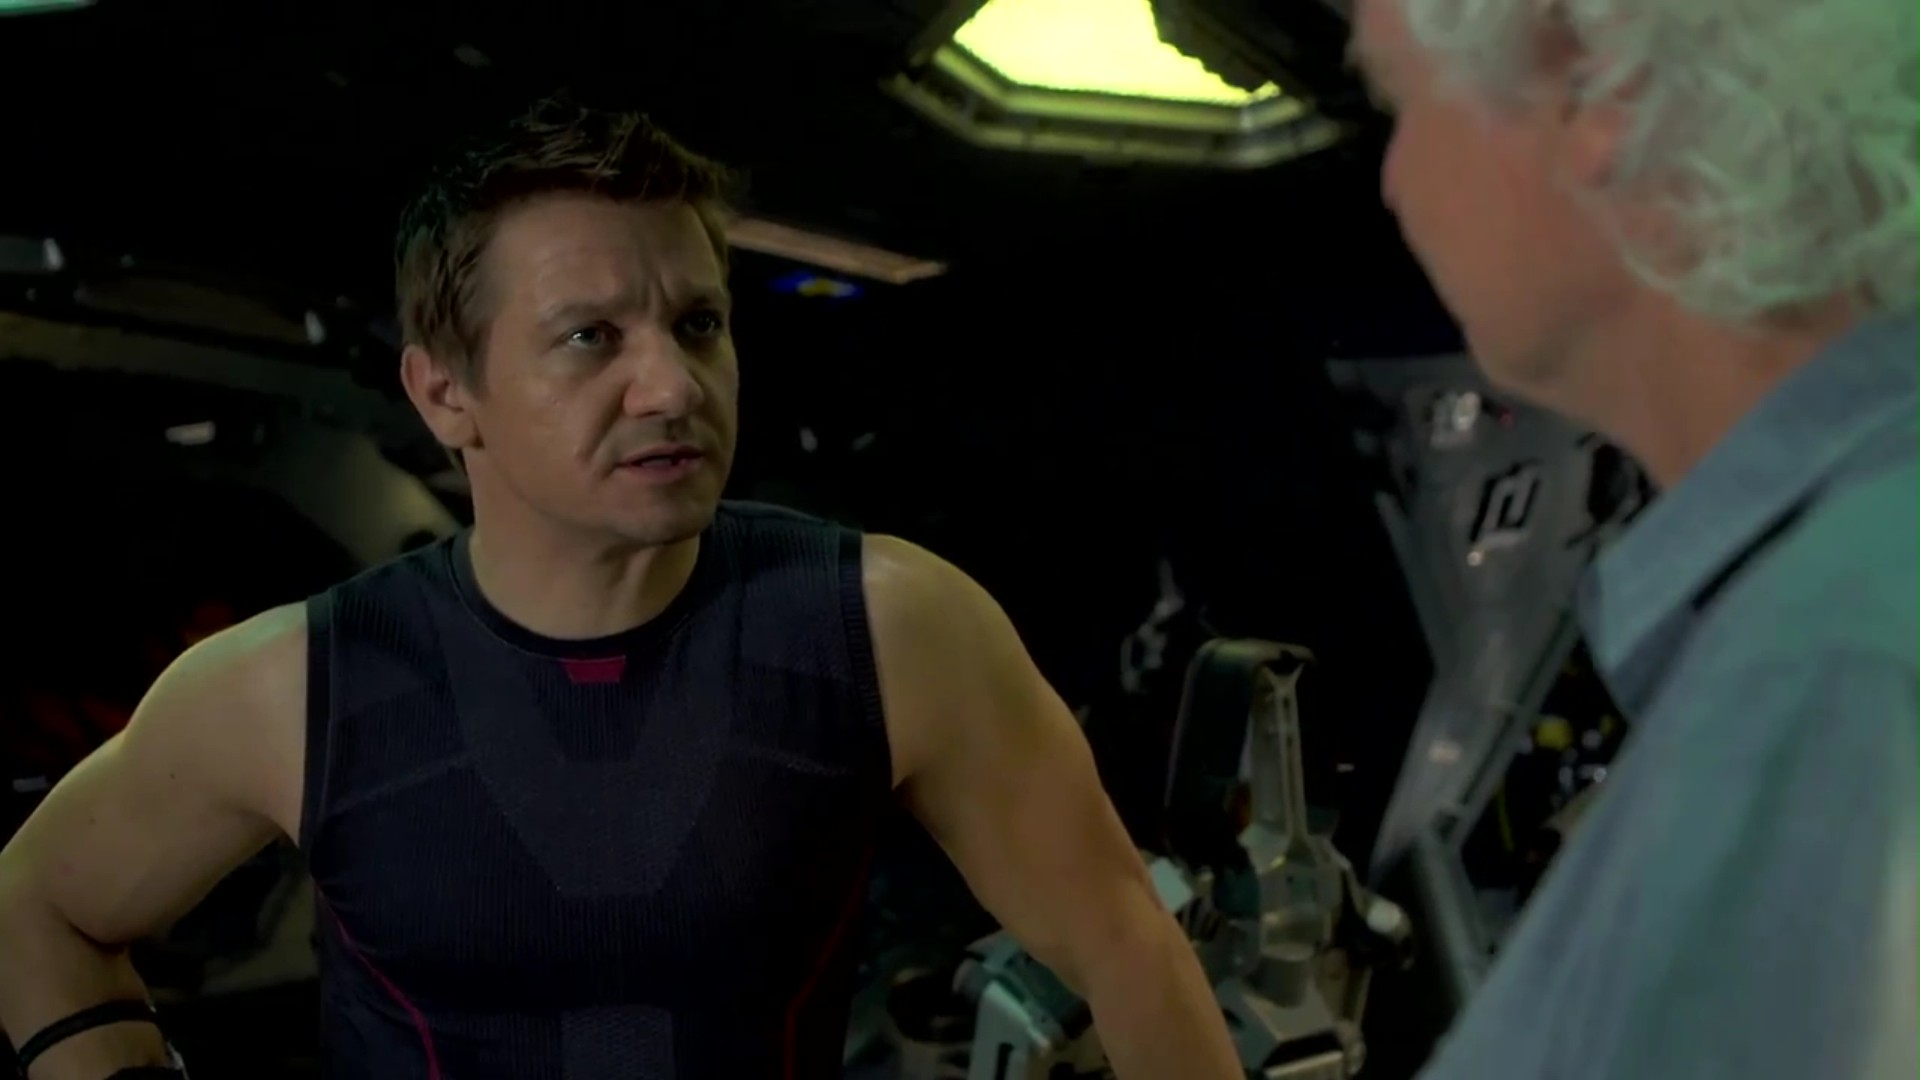 Exclusive_-_Behind_the_Scenes_of_Avengers_Age_of_Ultron_Part_2_of_3[11-17-18].jpg